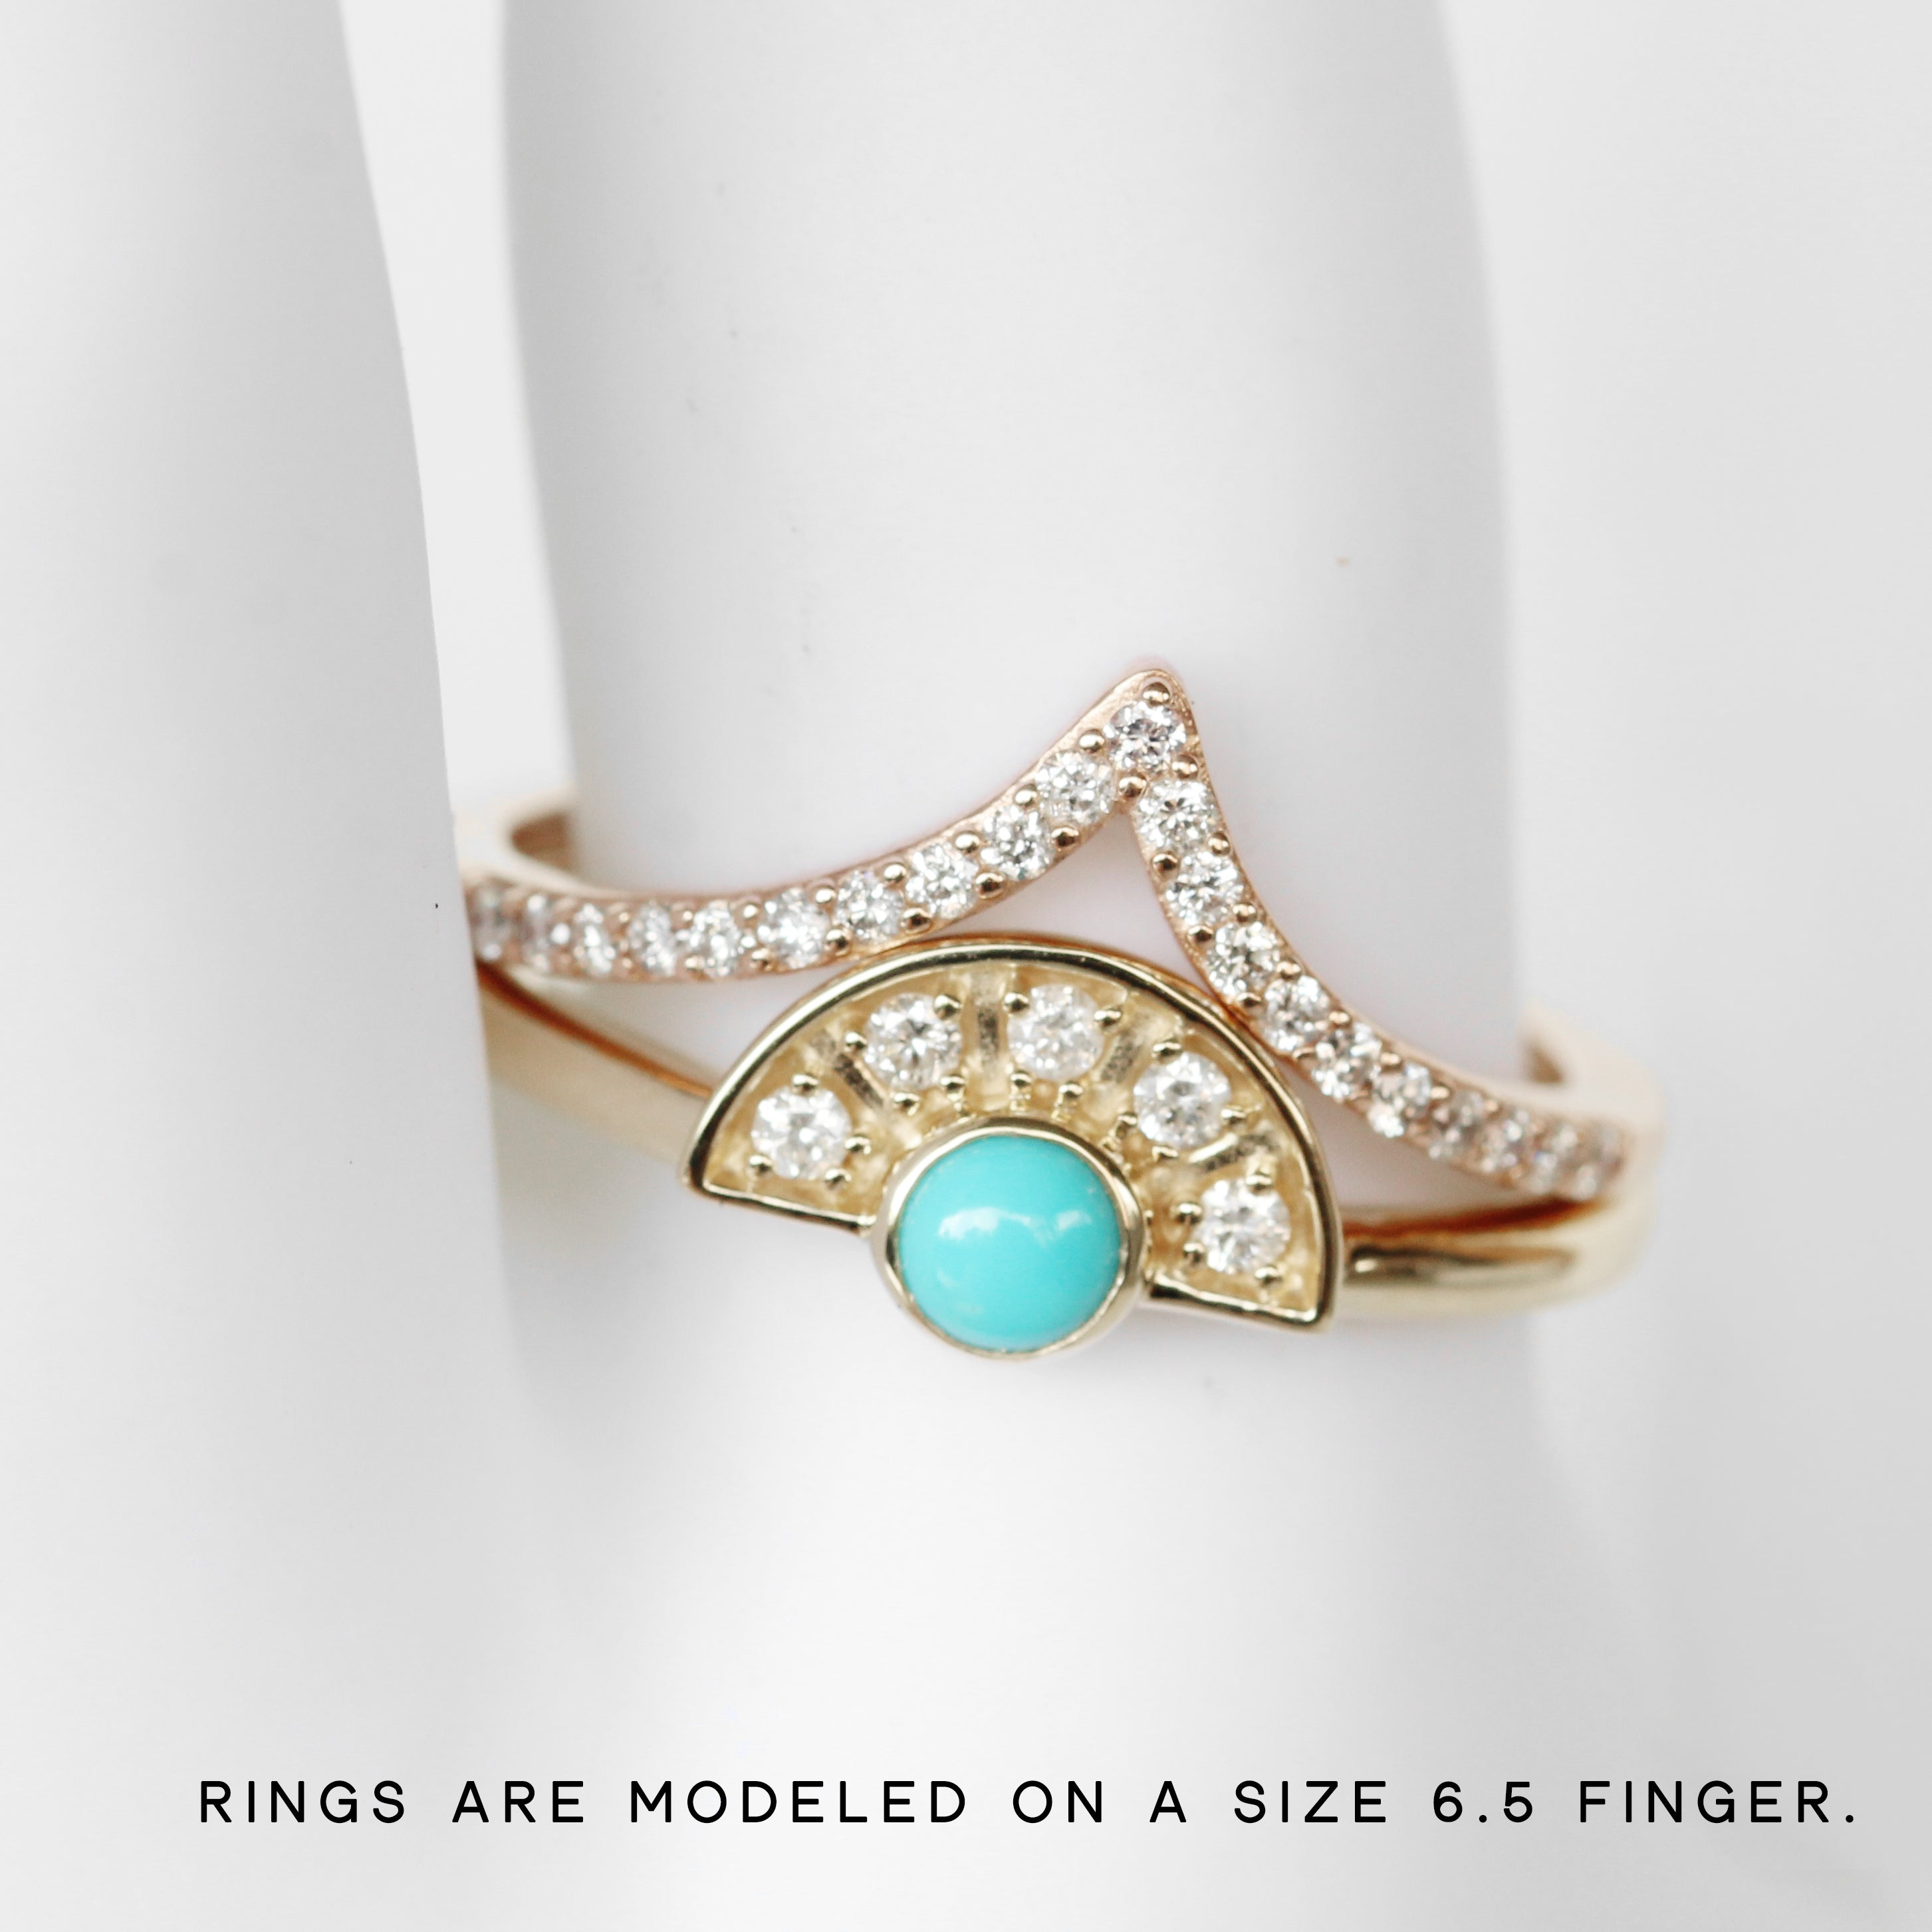 Dottie Turquoise + Diamond Stackable or Wedding Ring - Your choice of metal - Custom - Celestial Diamonds ® by Midwinter Co.